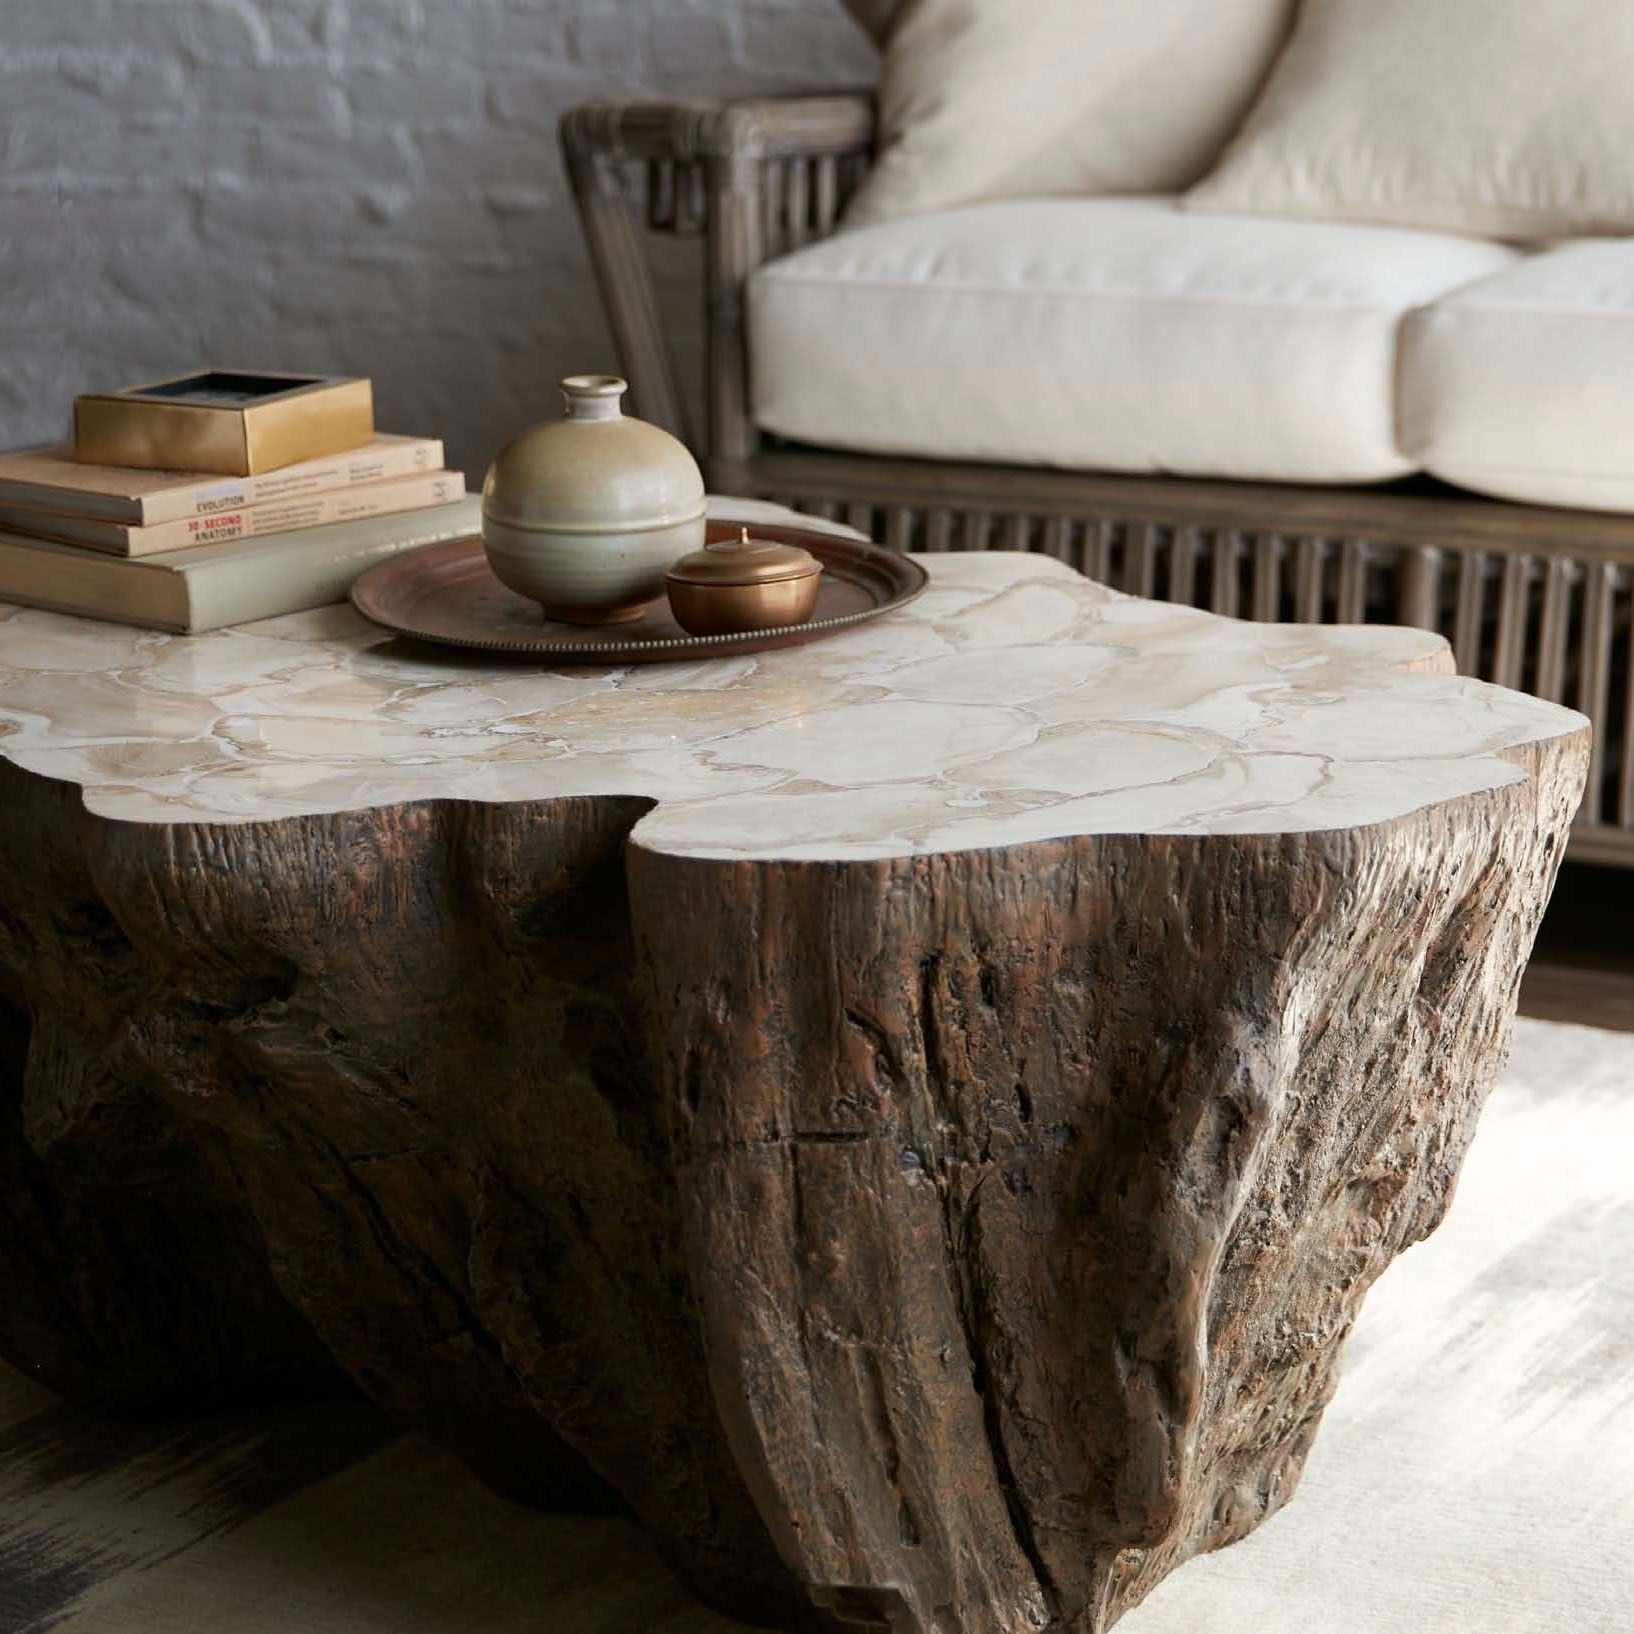 Inlaid Fossilized Clam Shell On Stonecast Base Made From A Natural Tree Trunk Mold Incr Wood Coffee Table Living Room Coffee Table Living Room Coffee Table [ 1634 x 1634 Pixel ]